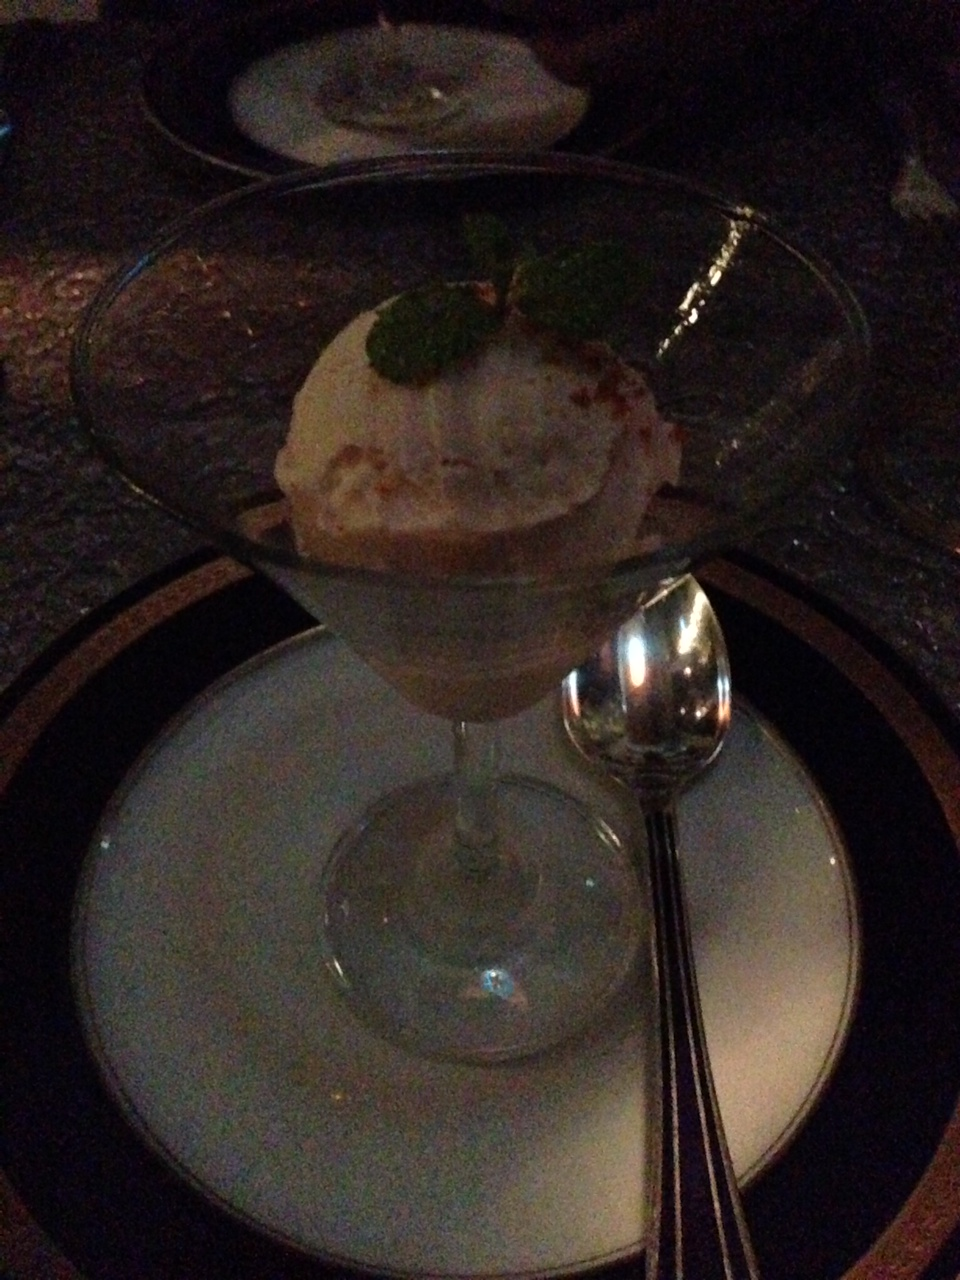 Guava and Piri Piri Olive Sorbet... There is a hit of spice that you get at the end which is amazing...